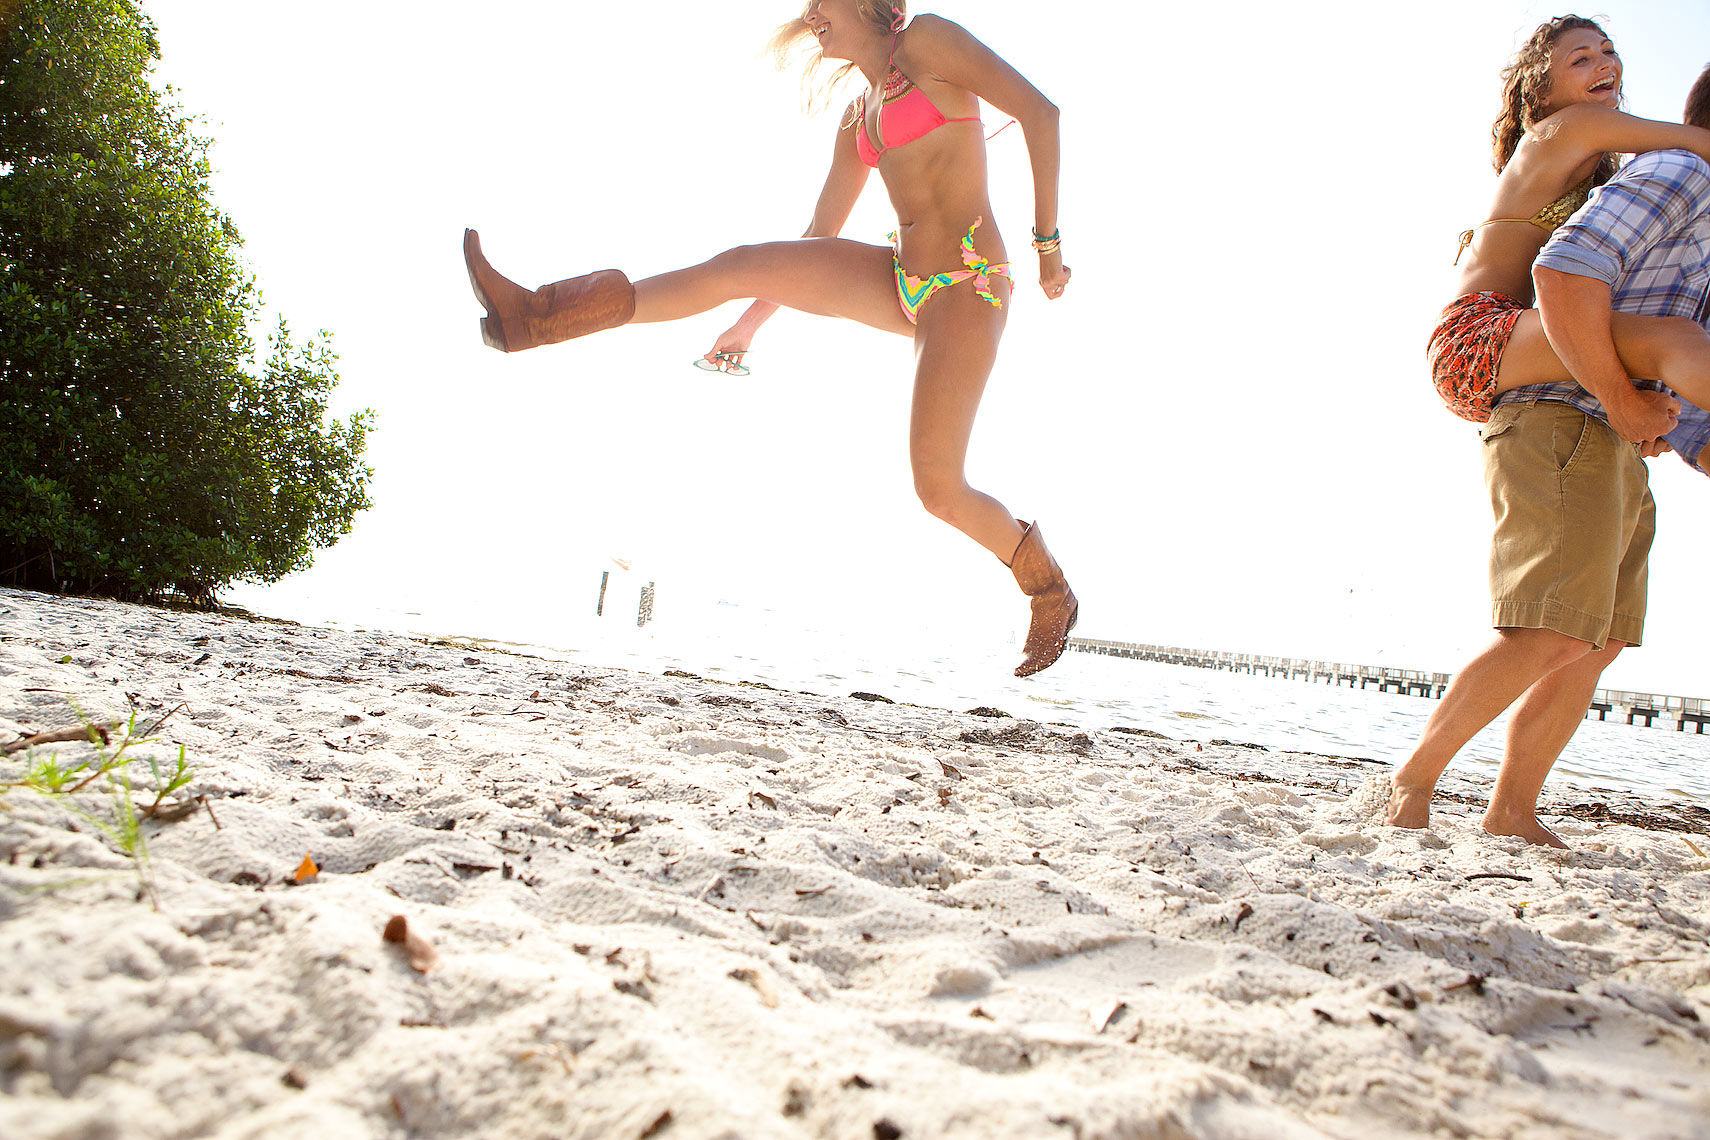 woman in bikini and boots jumps on beach_Robert-Holland.jpg